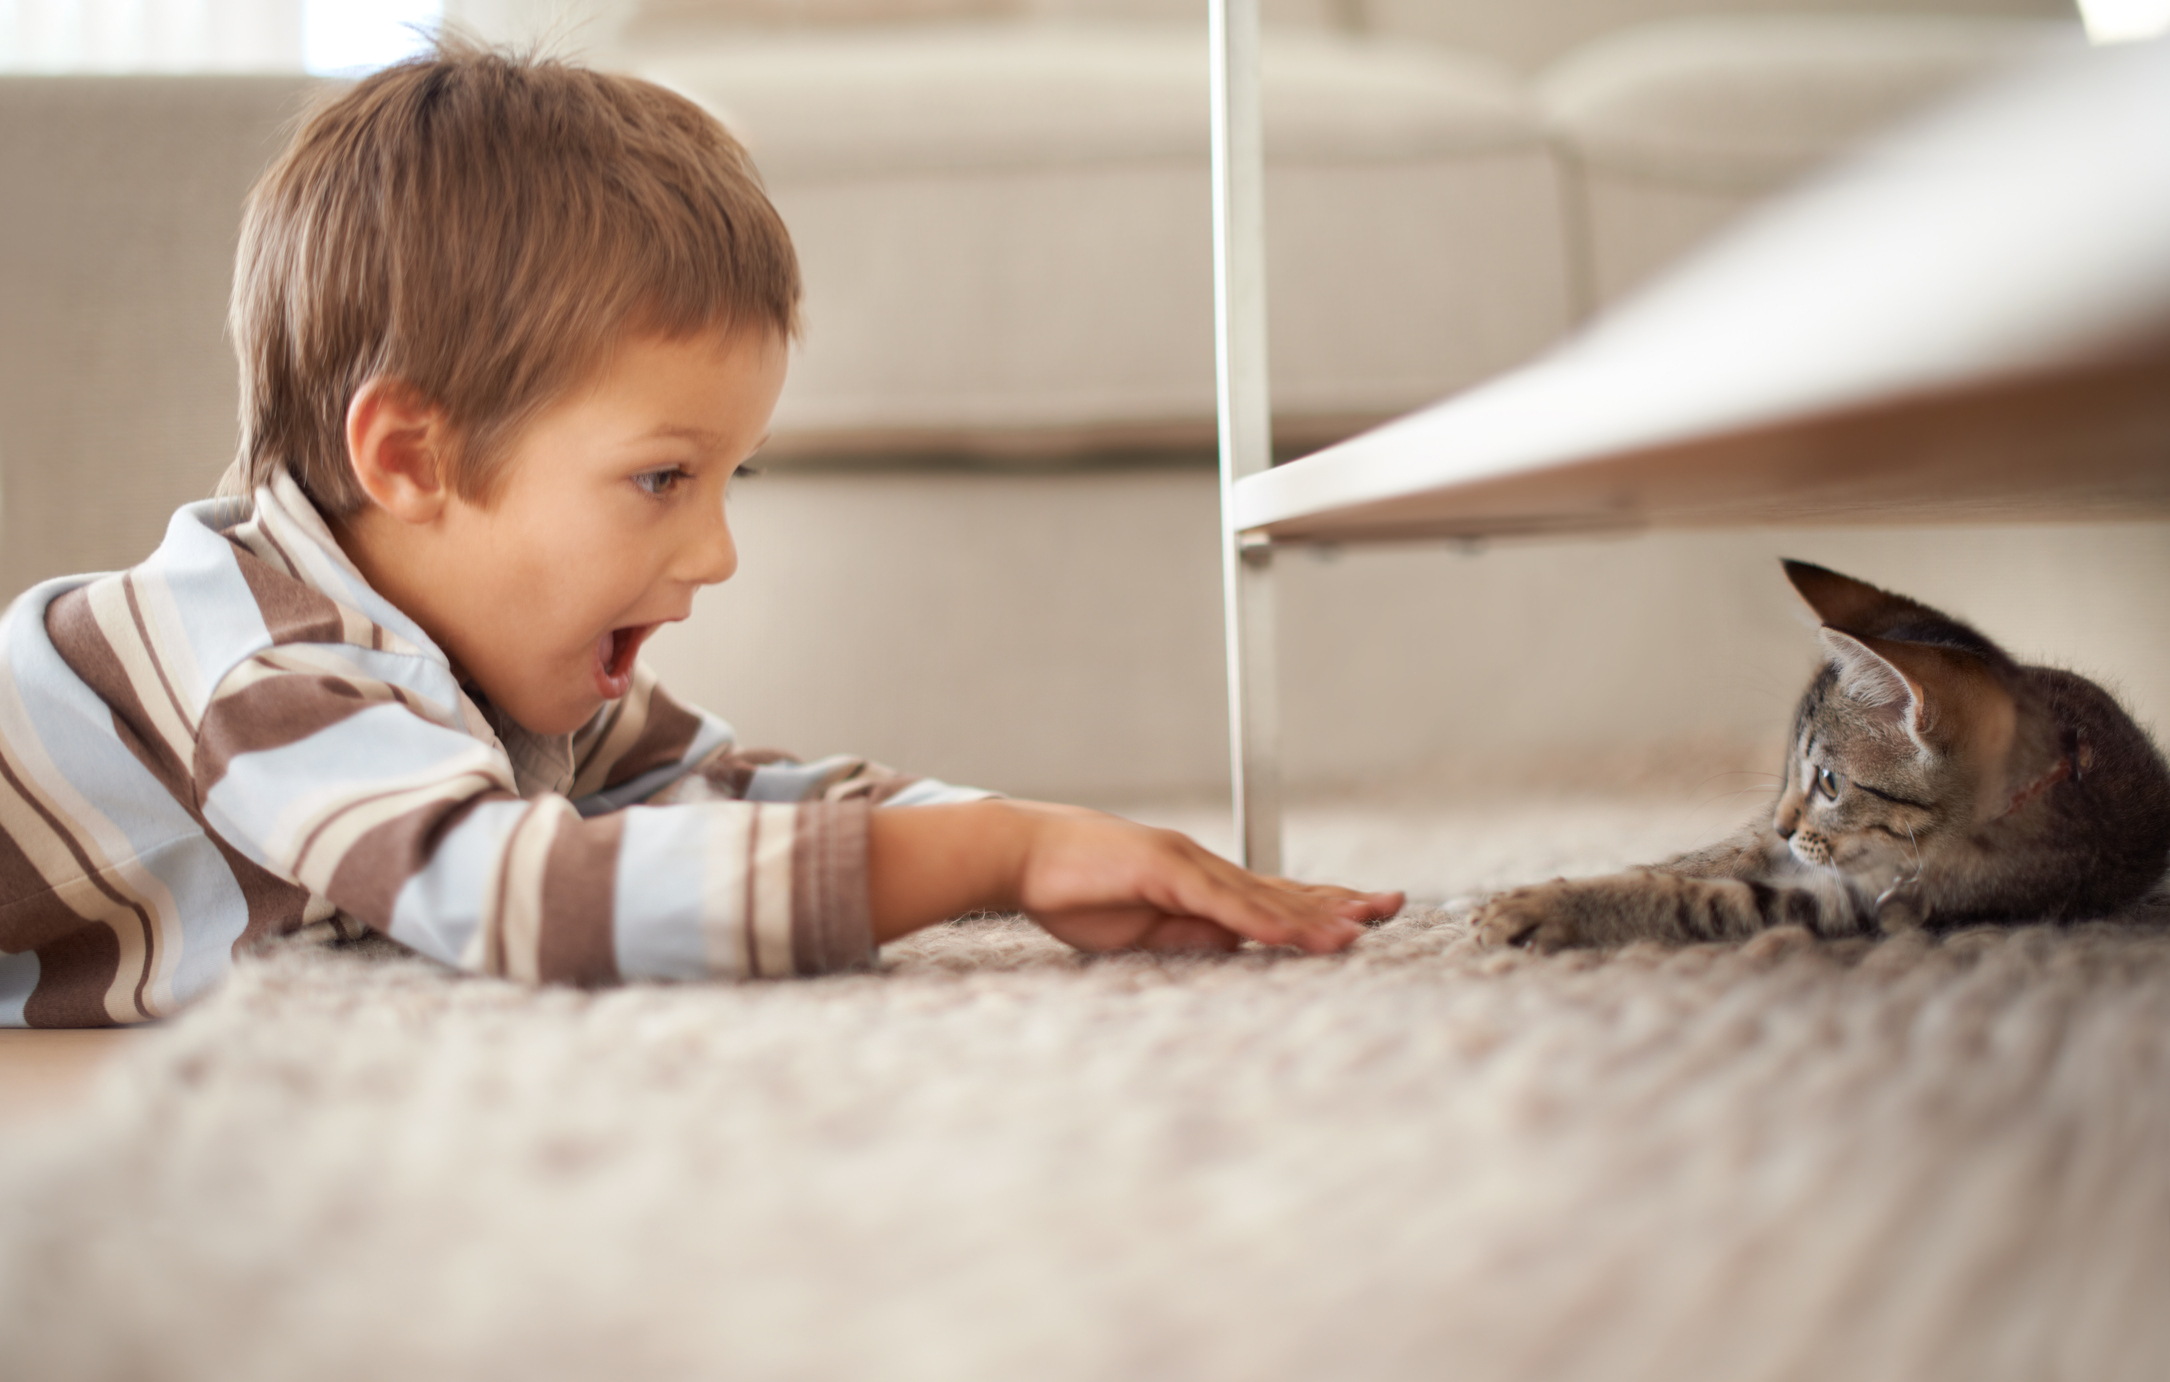 Young boy plays with a kitten under the table